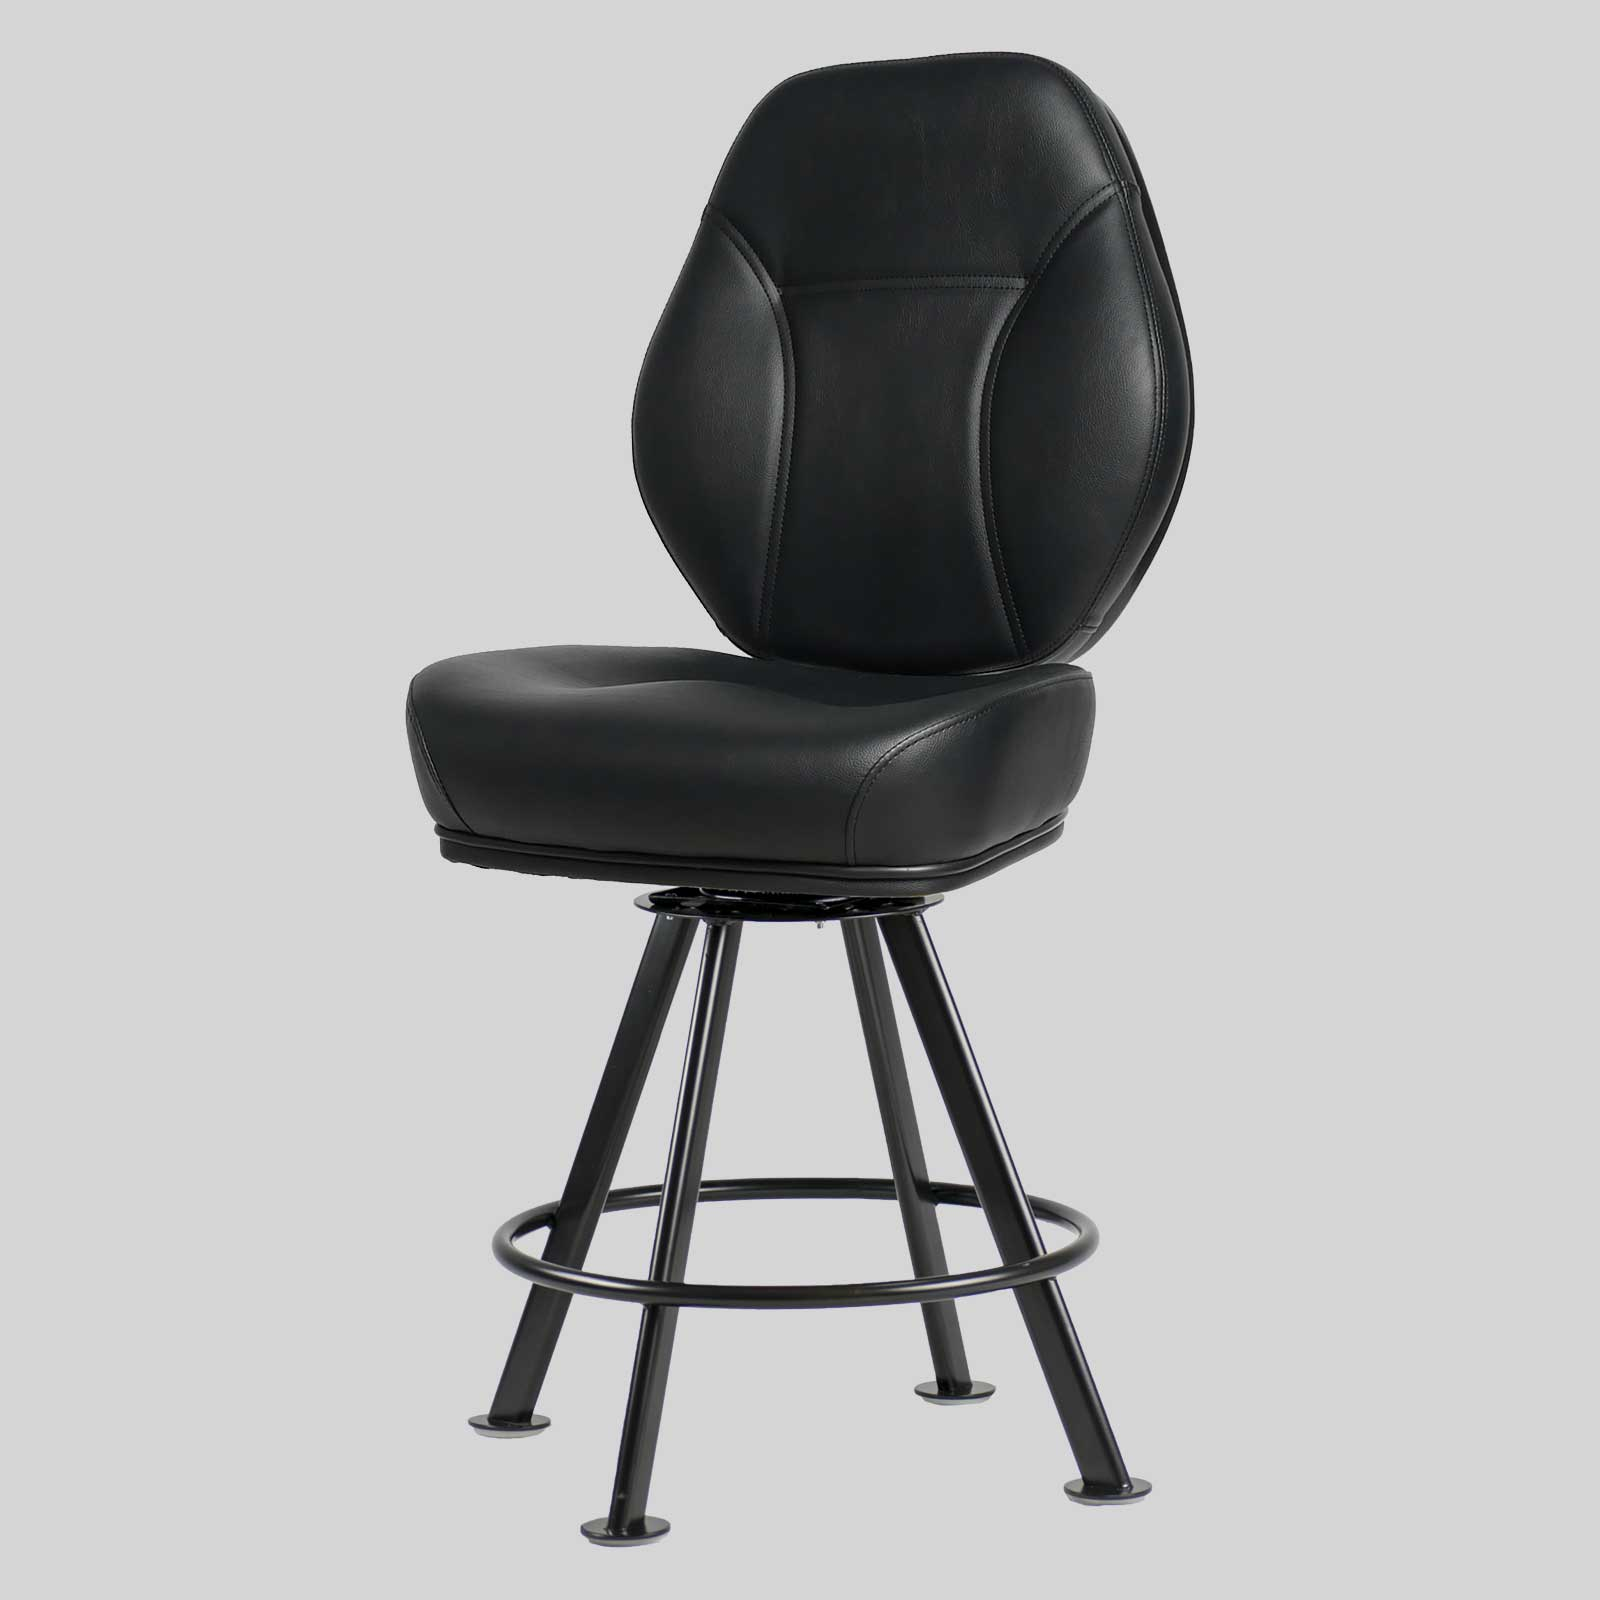 Diamond Gaming Stool Australia Wide Delivery Concept